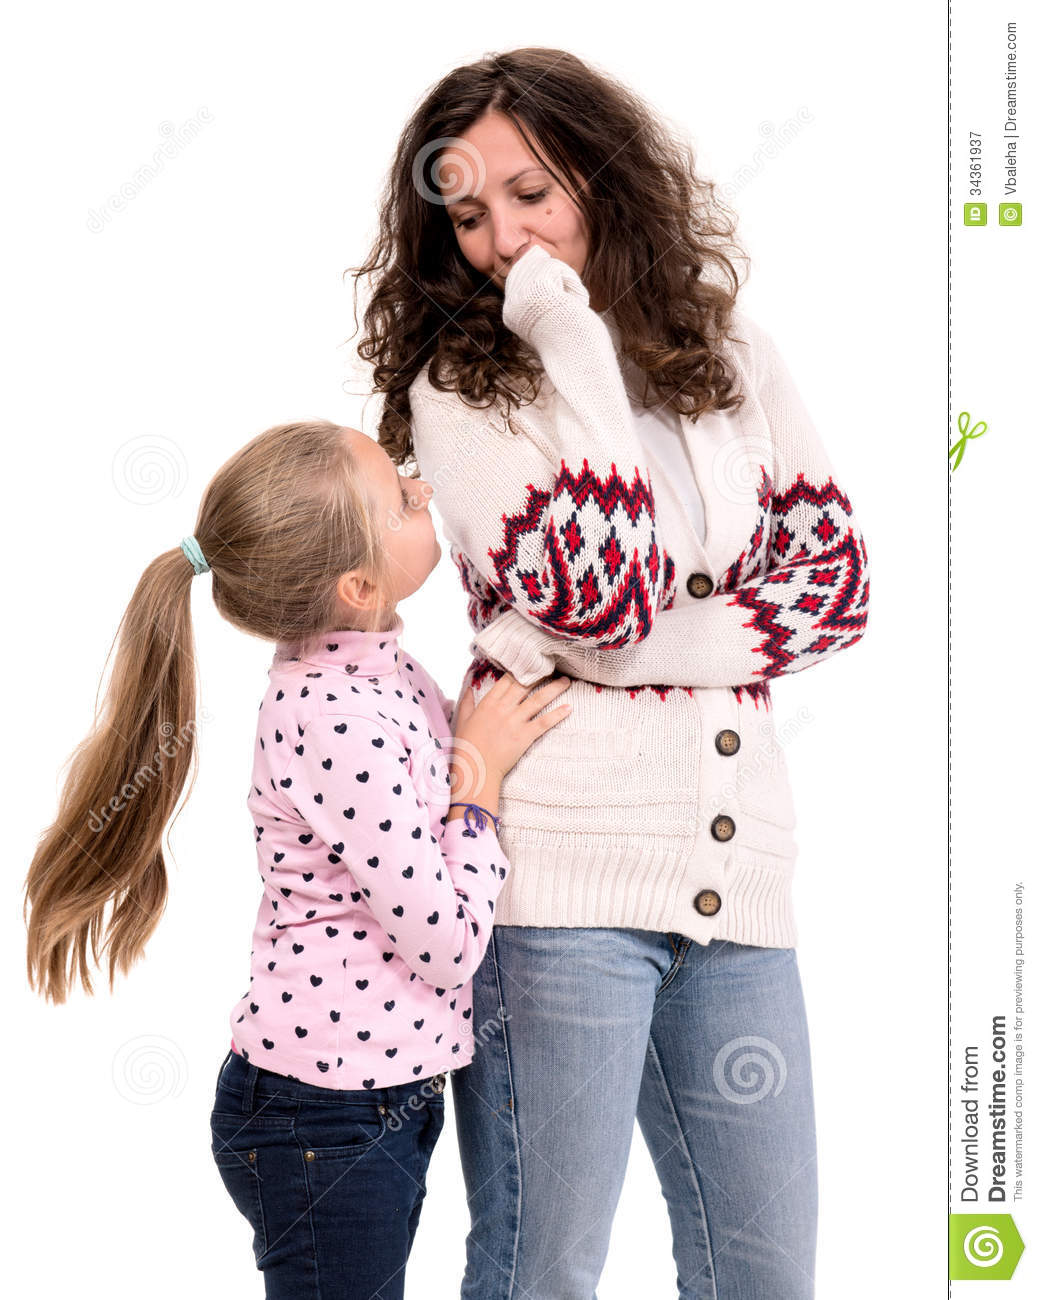 Mother and daughter dating each other